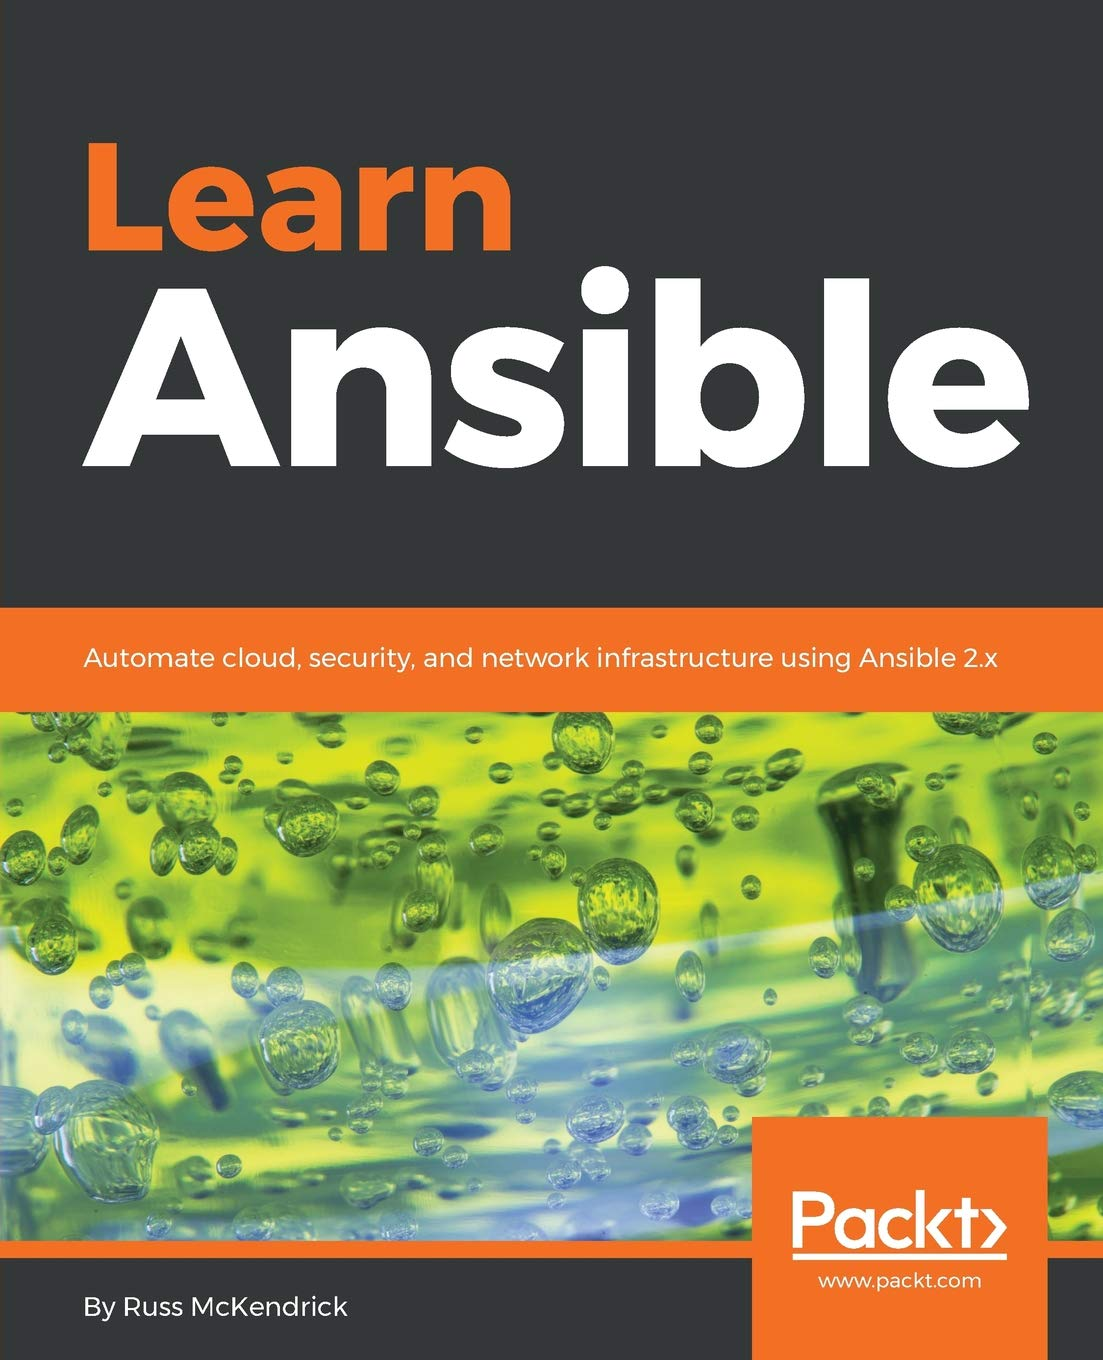 Learn Ansible: Automate cloud, security, and network